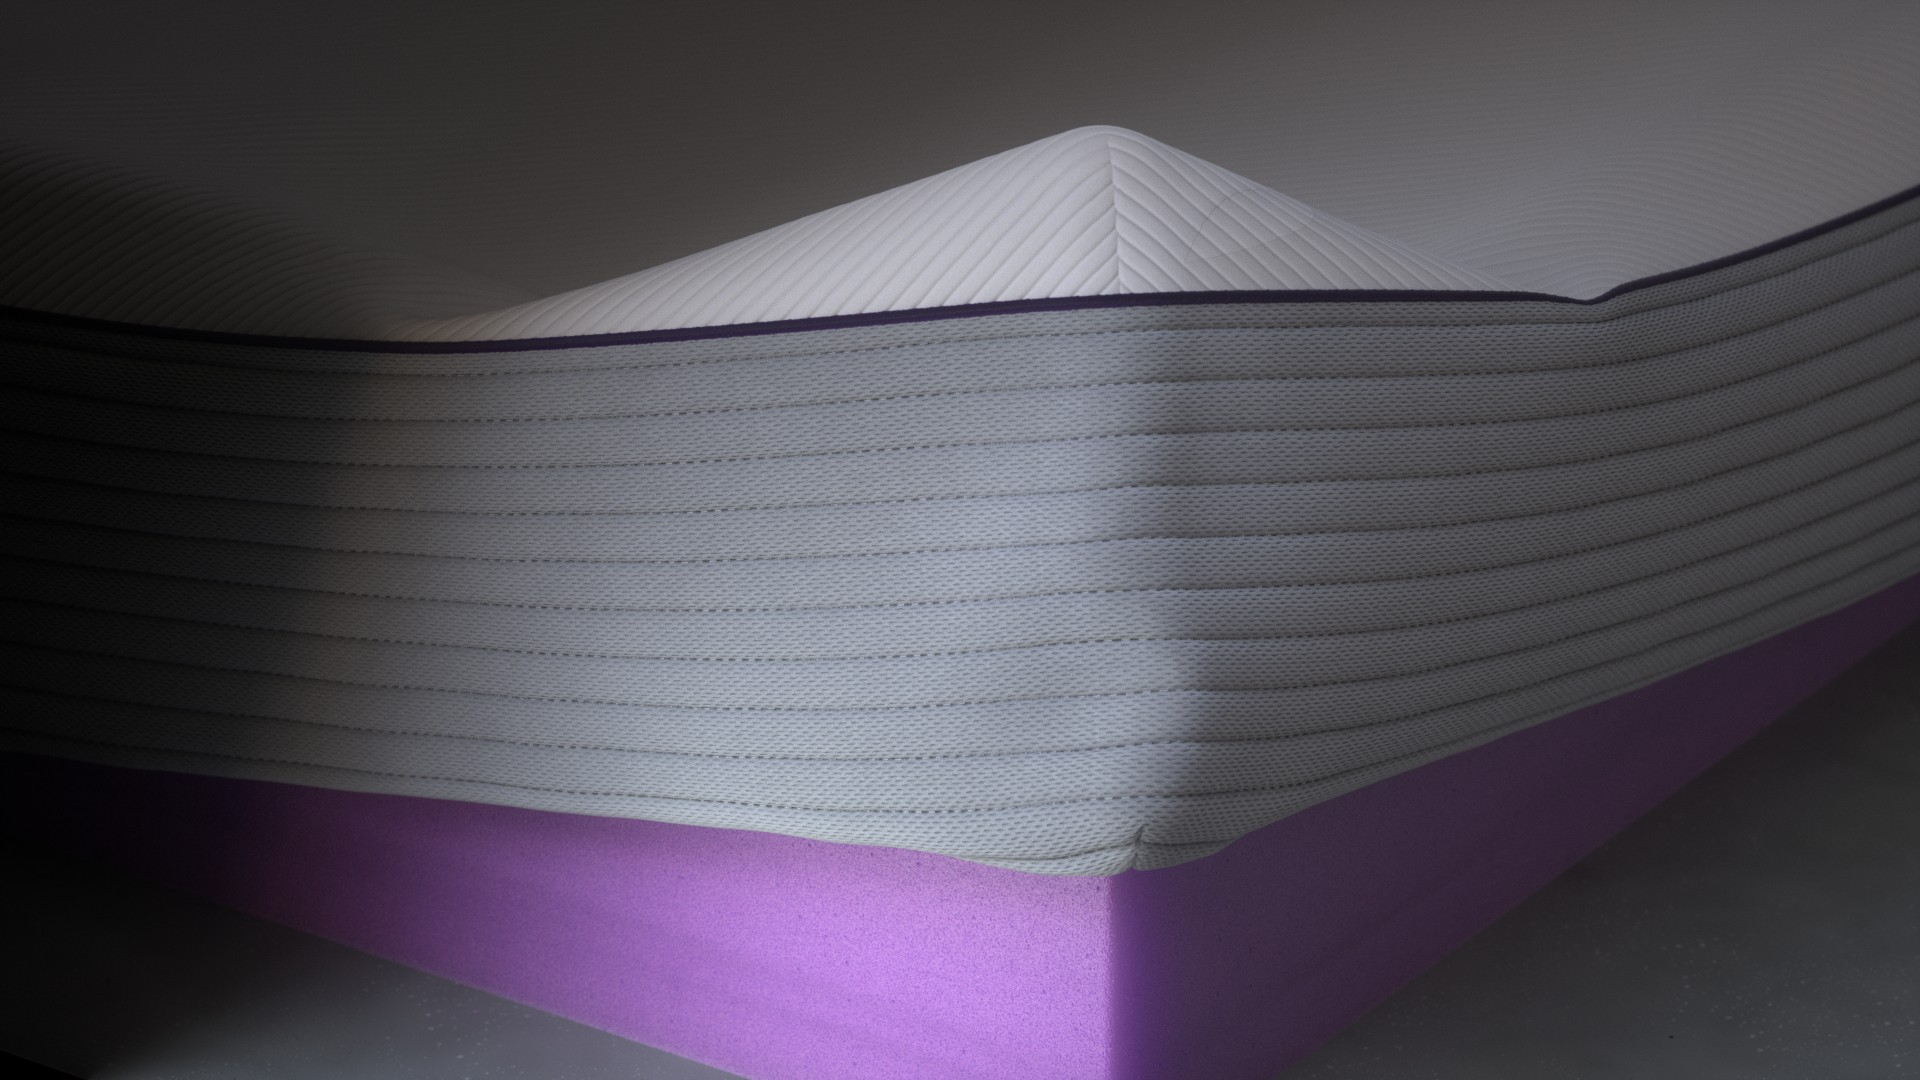 PR_AC_Mattress_Construction_v019